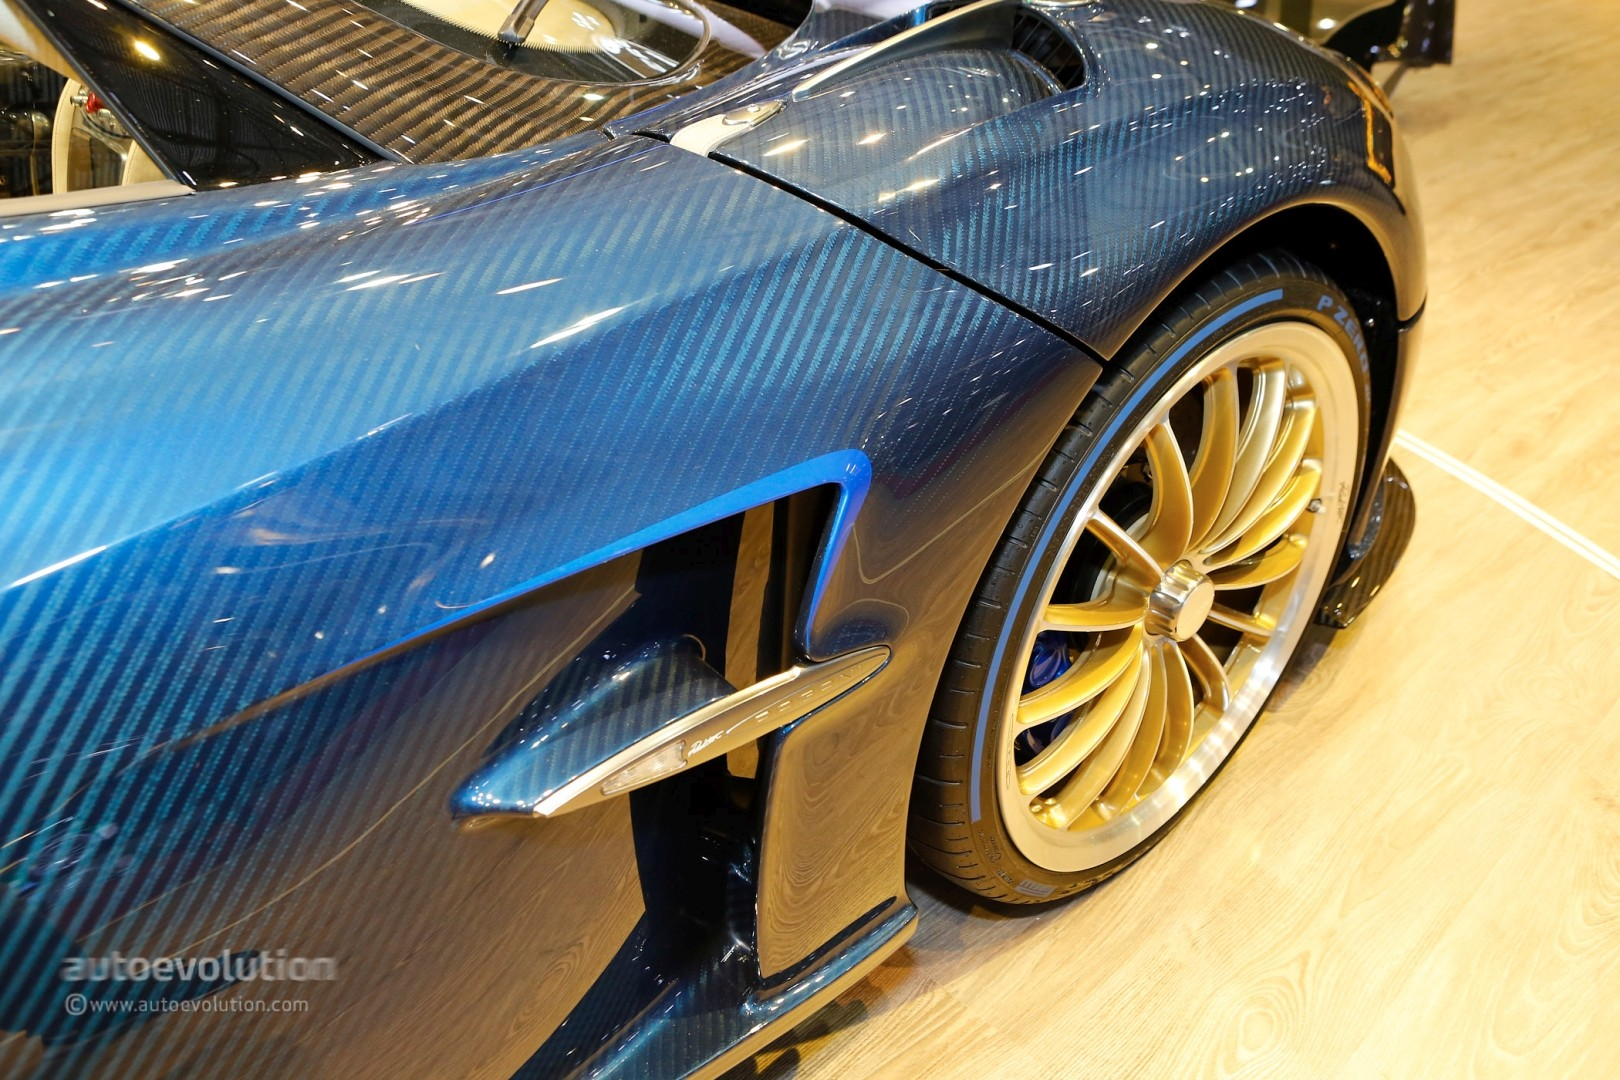 DS pagani huayra roadster : Pagani Huayra Roadster Looks like $2.4M in the Flesh, Drops Carbon ...